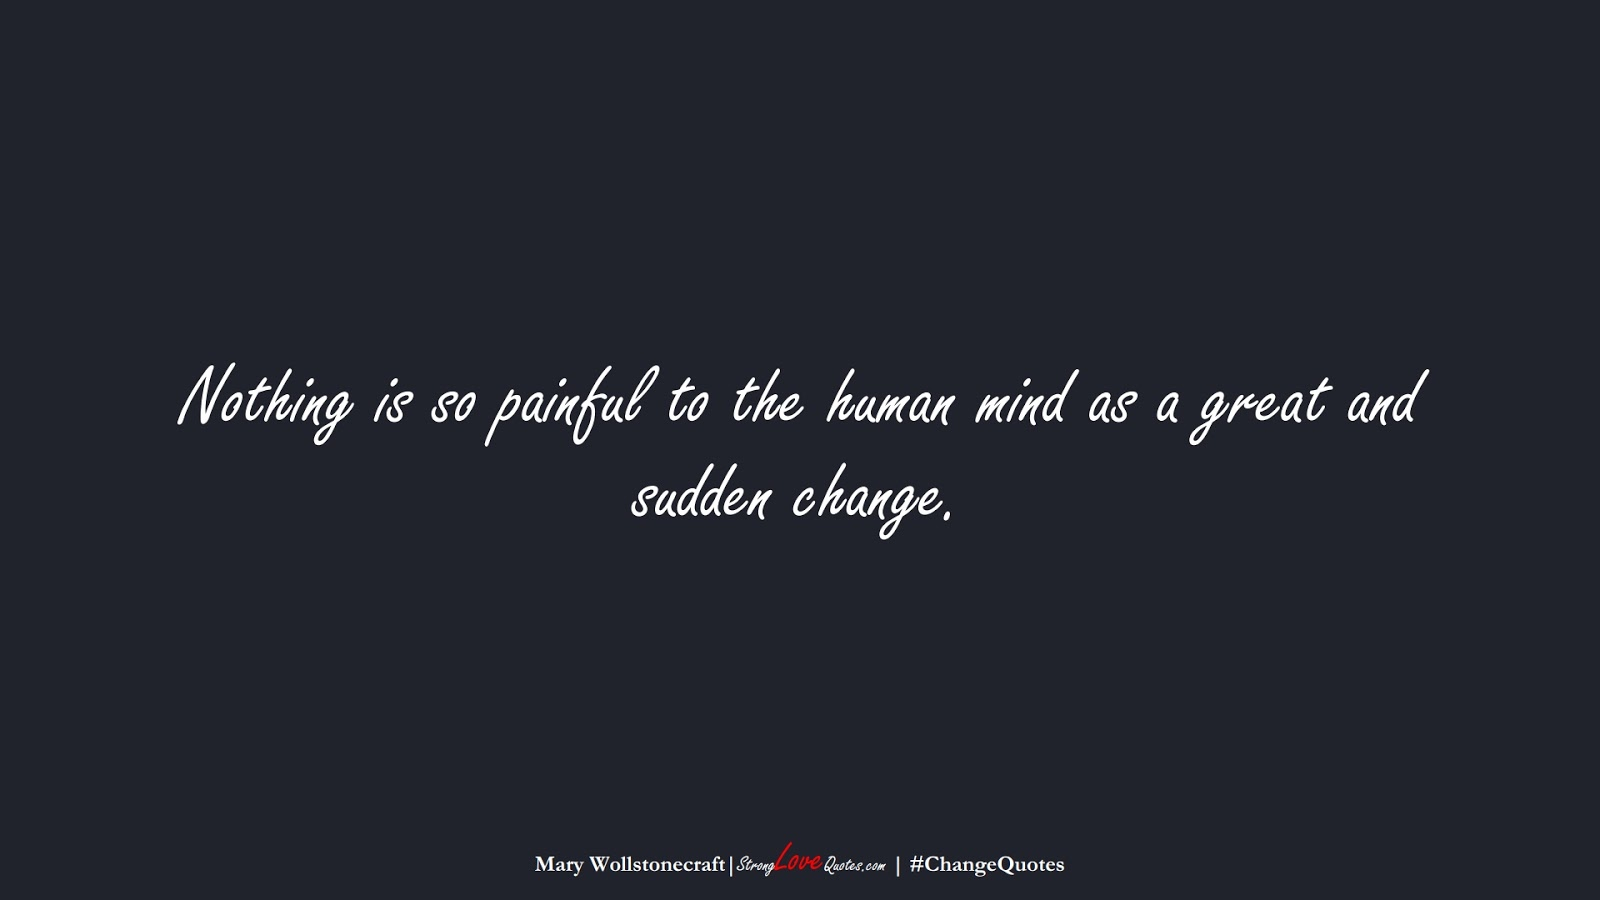 Nothing is so painful to the human mind as a great and sudden change. (Mary Wollstonecraft);  #ChangeQuotes